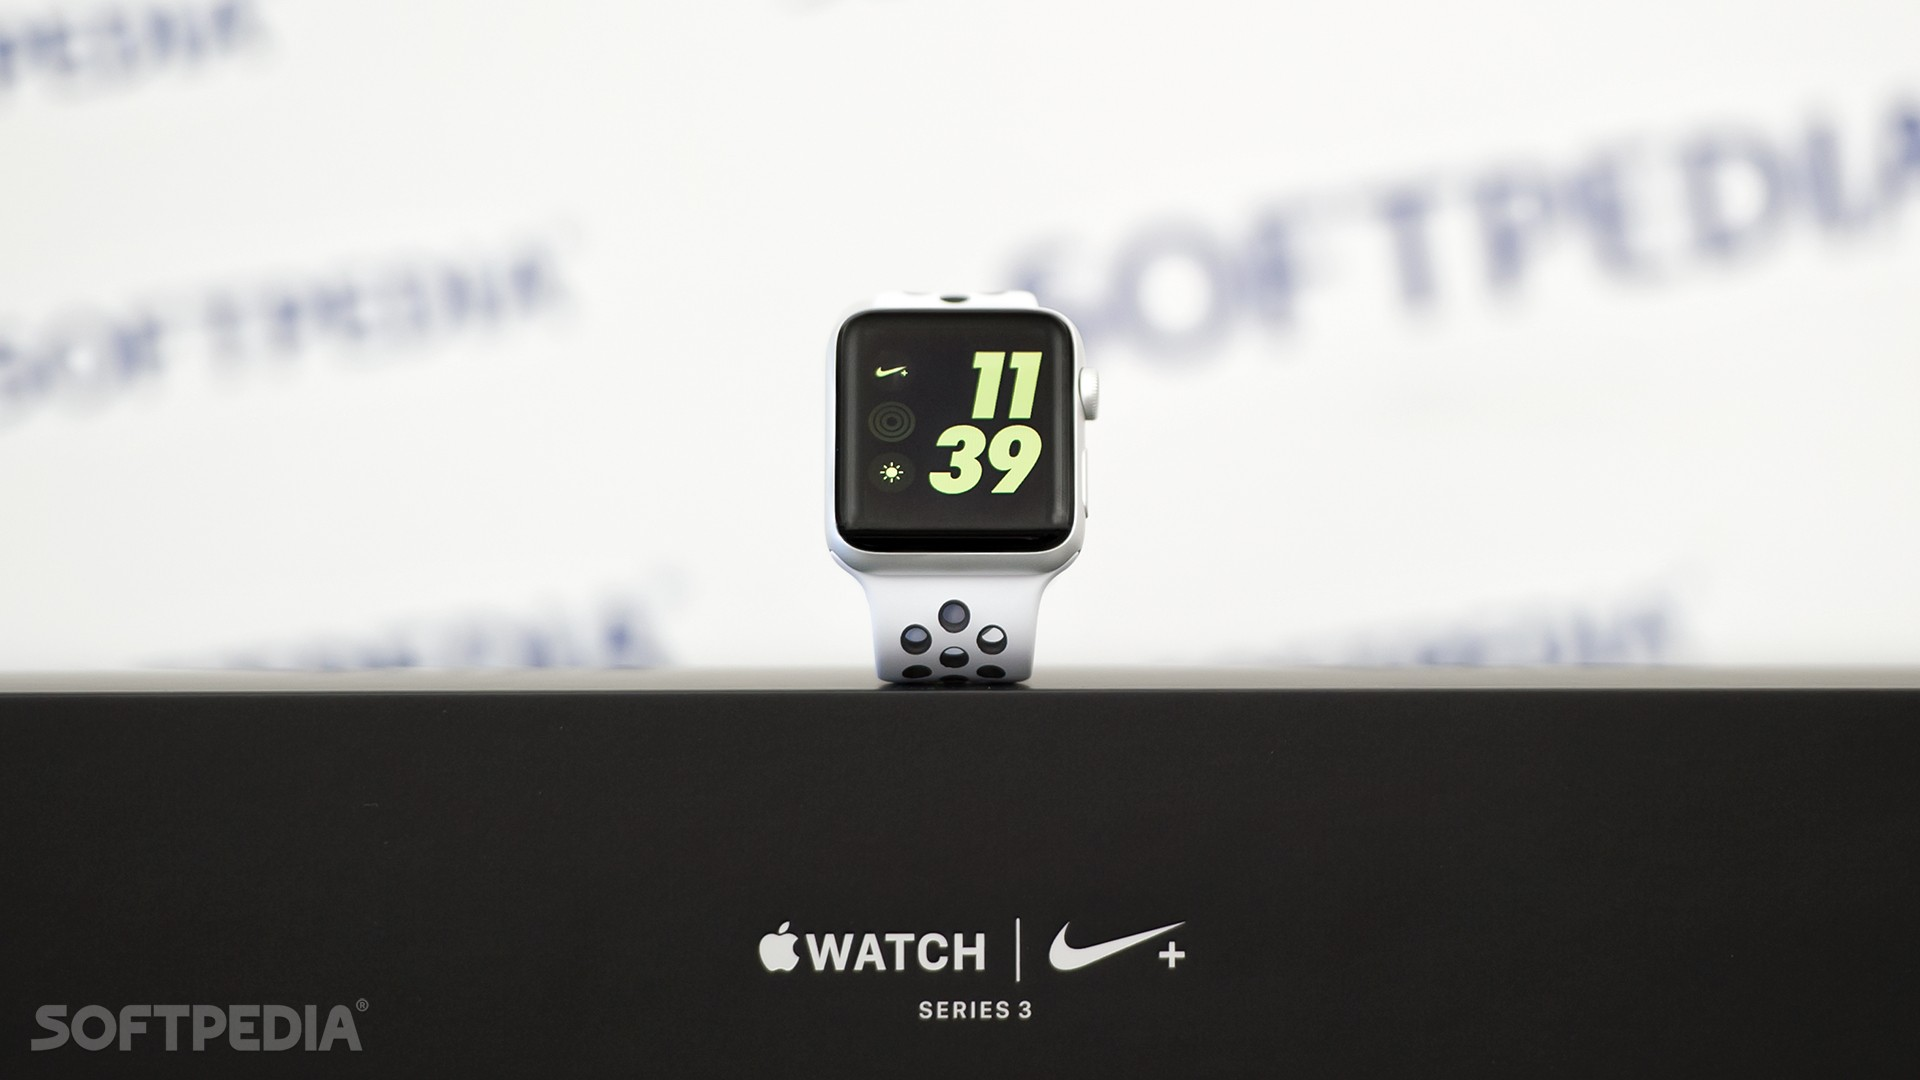 Apple Sells More Apple Watches But Loses Market Share Due to